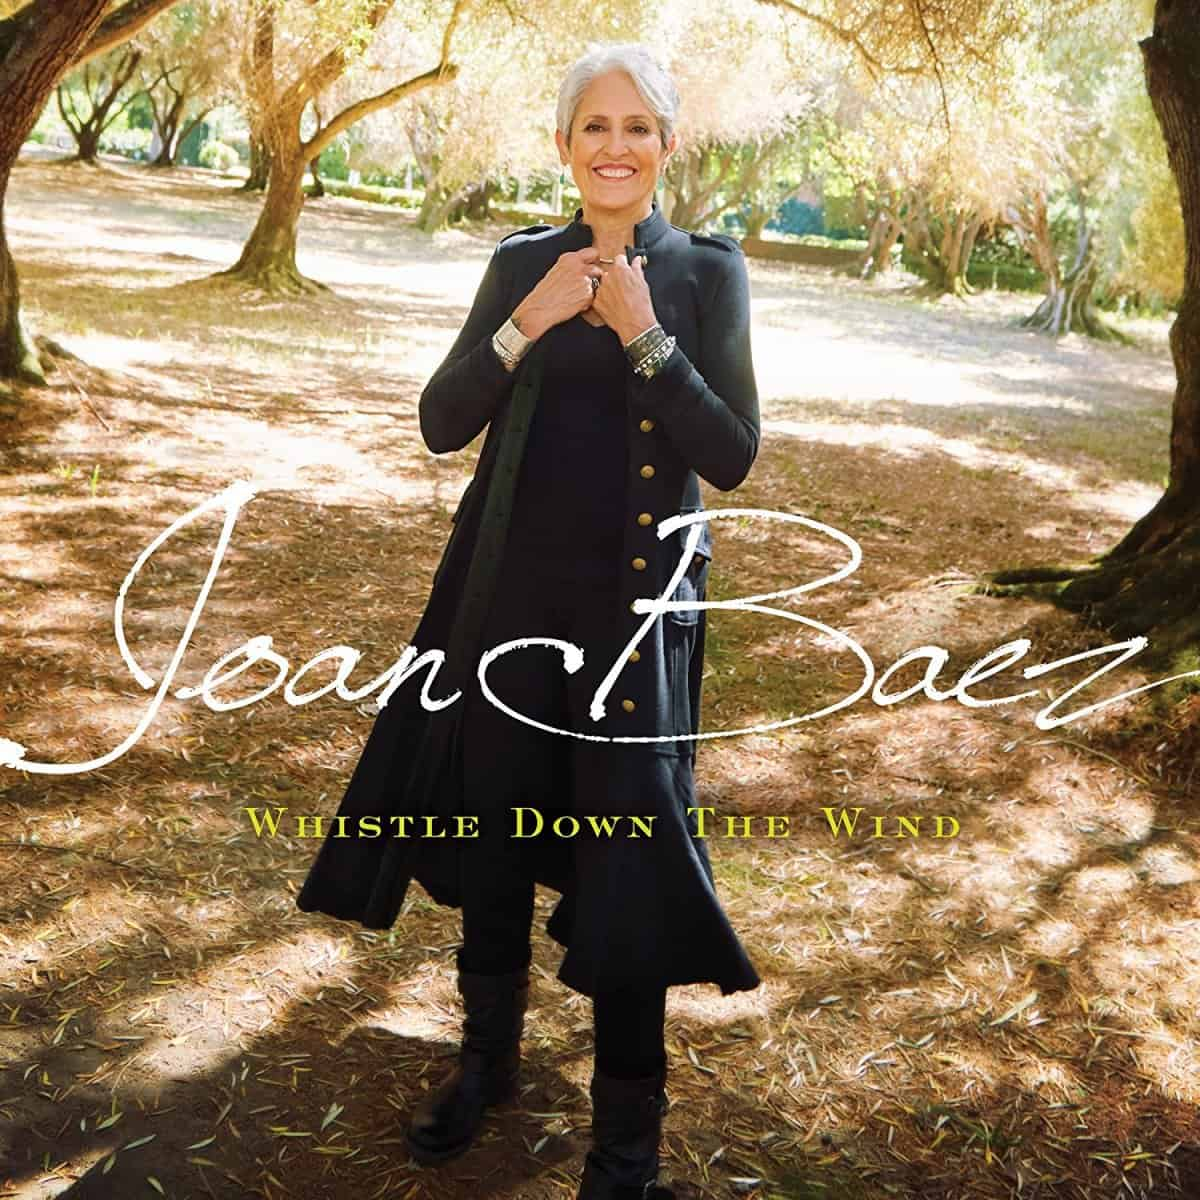 Joan Baez Whistle Down The Wind Album Cover